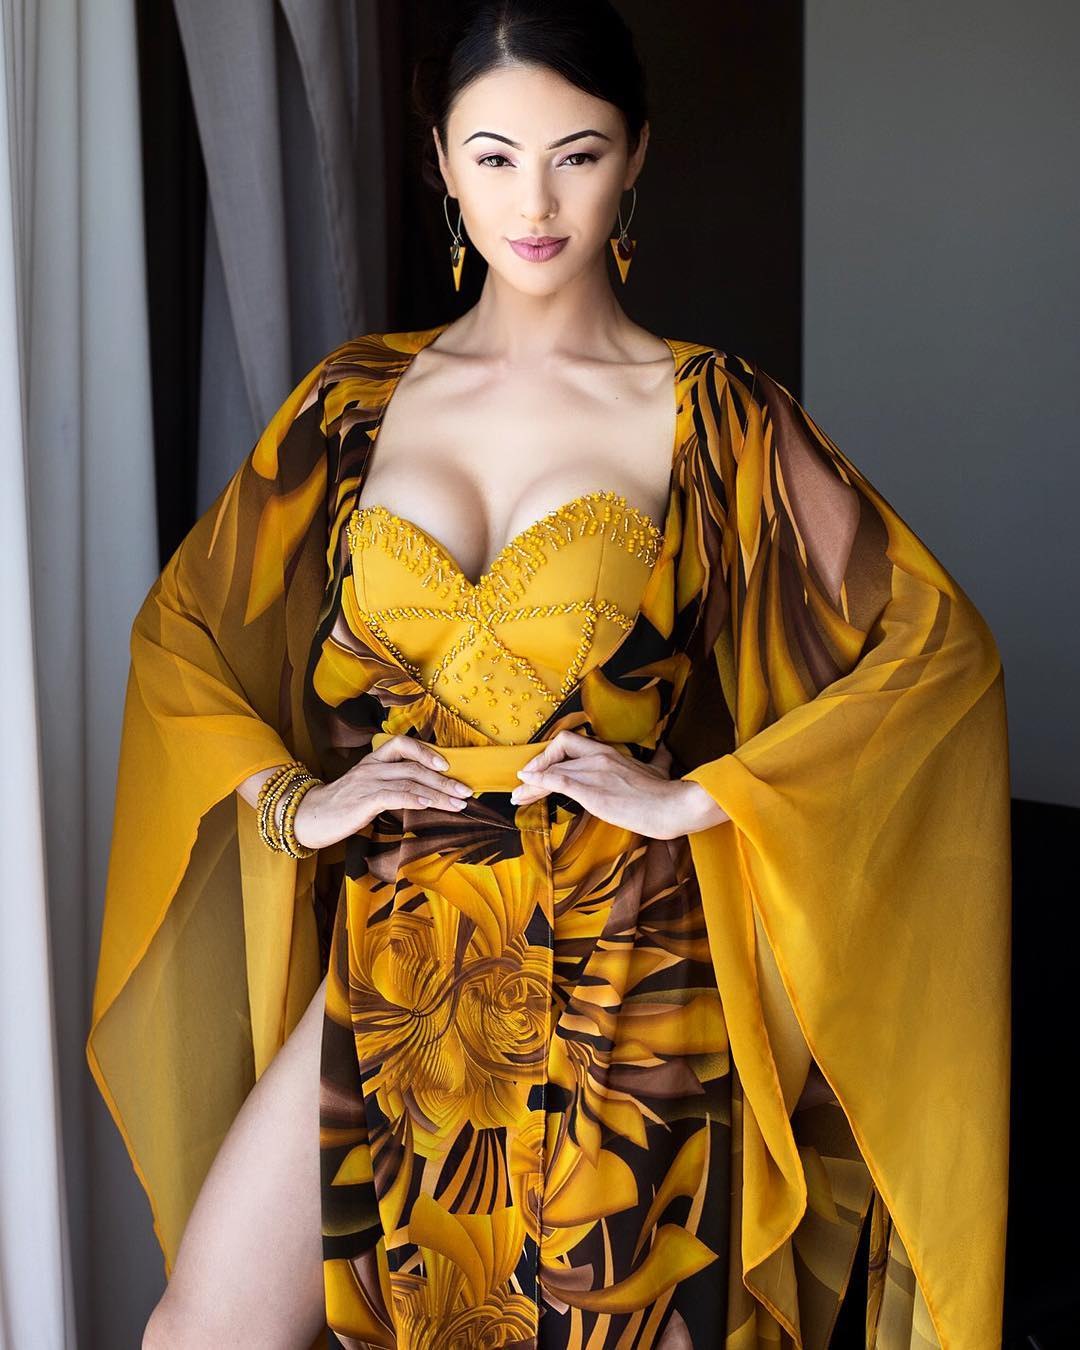 Lalla Hirayama enjoys snow in Japan